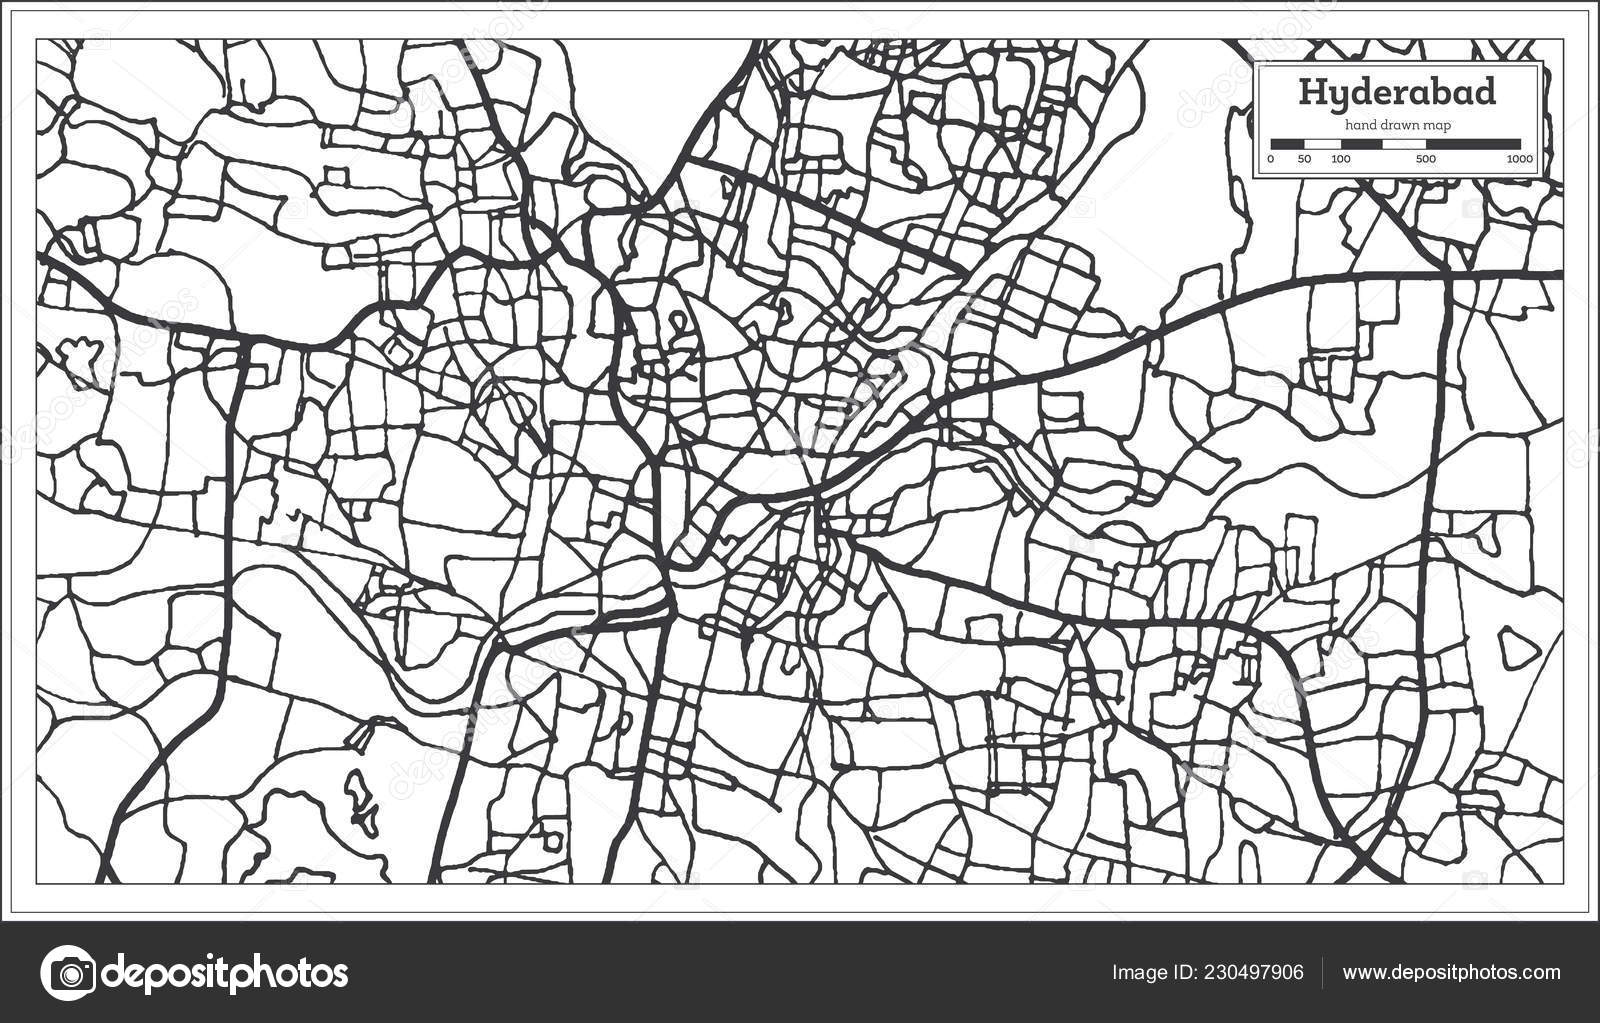 Hyderabad India City Map Retro Style Outline Map Vector Illustration on madras india map, andhra pradesh map, bengalor india map, new delhi, jaipur india map, dhaka india map, kabul india map, nagpur india map, madurai india map, karimnagar india map, andhra pradesh, taj mahal india map, lucknow india map, godavari river map, ahmedabad india map, kanpur india map, tamil nadu, surat india map, kolkata india map, varanasi india map, agra india map, bangalore india map, pune india map,